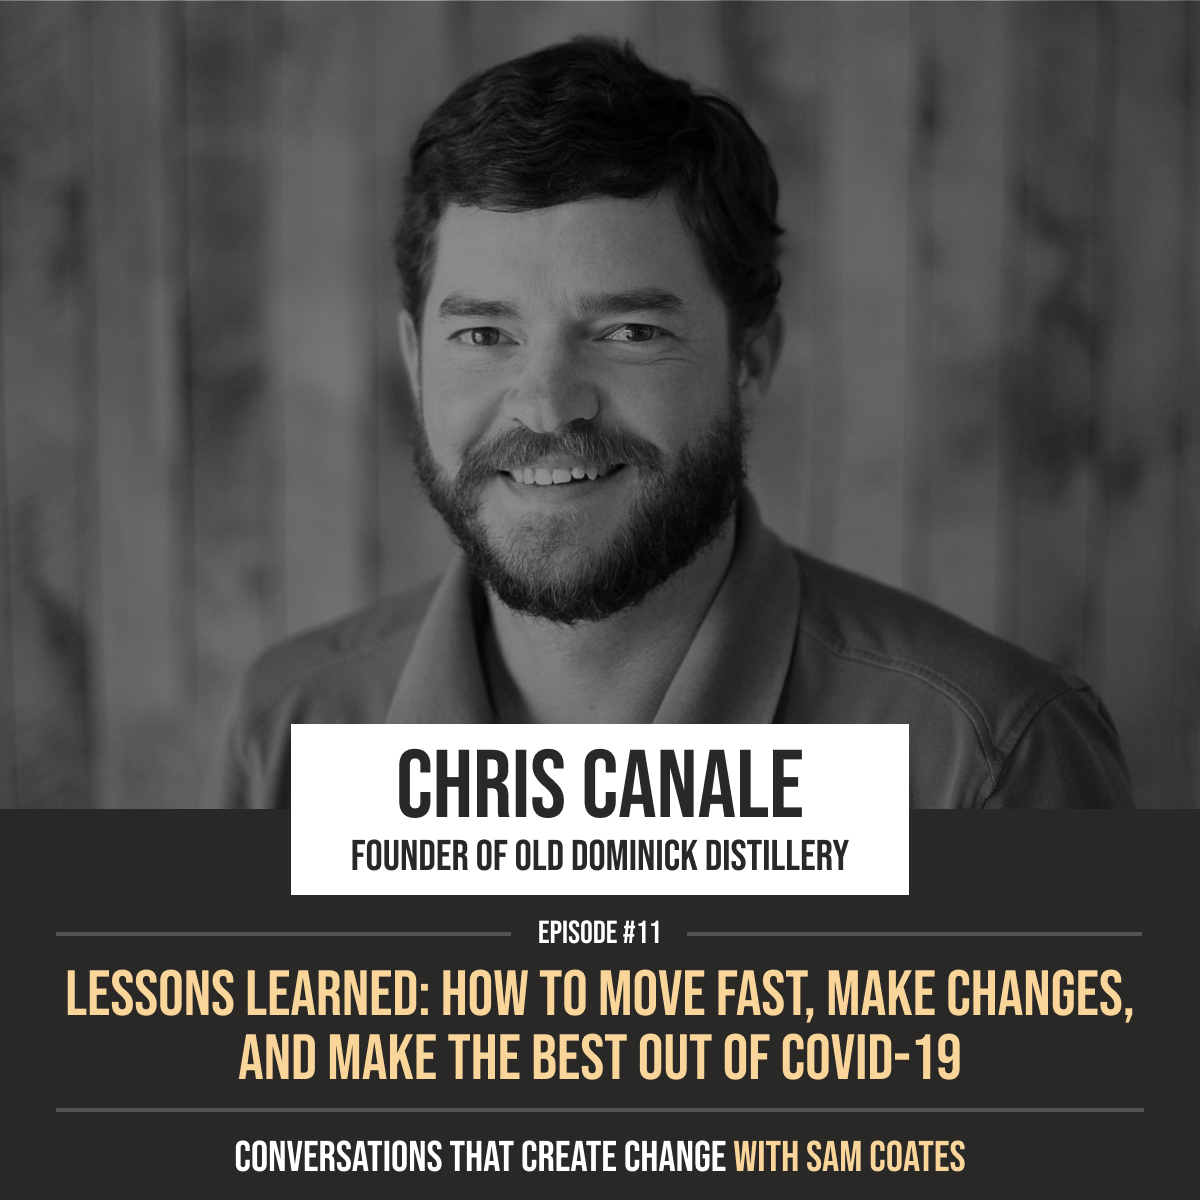 Chris Canale | Lessons Learned: How to Move Fast, Make Changes, 